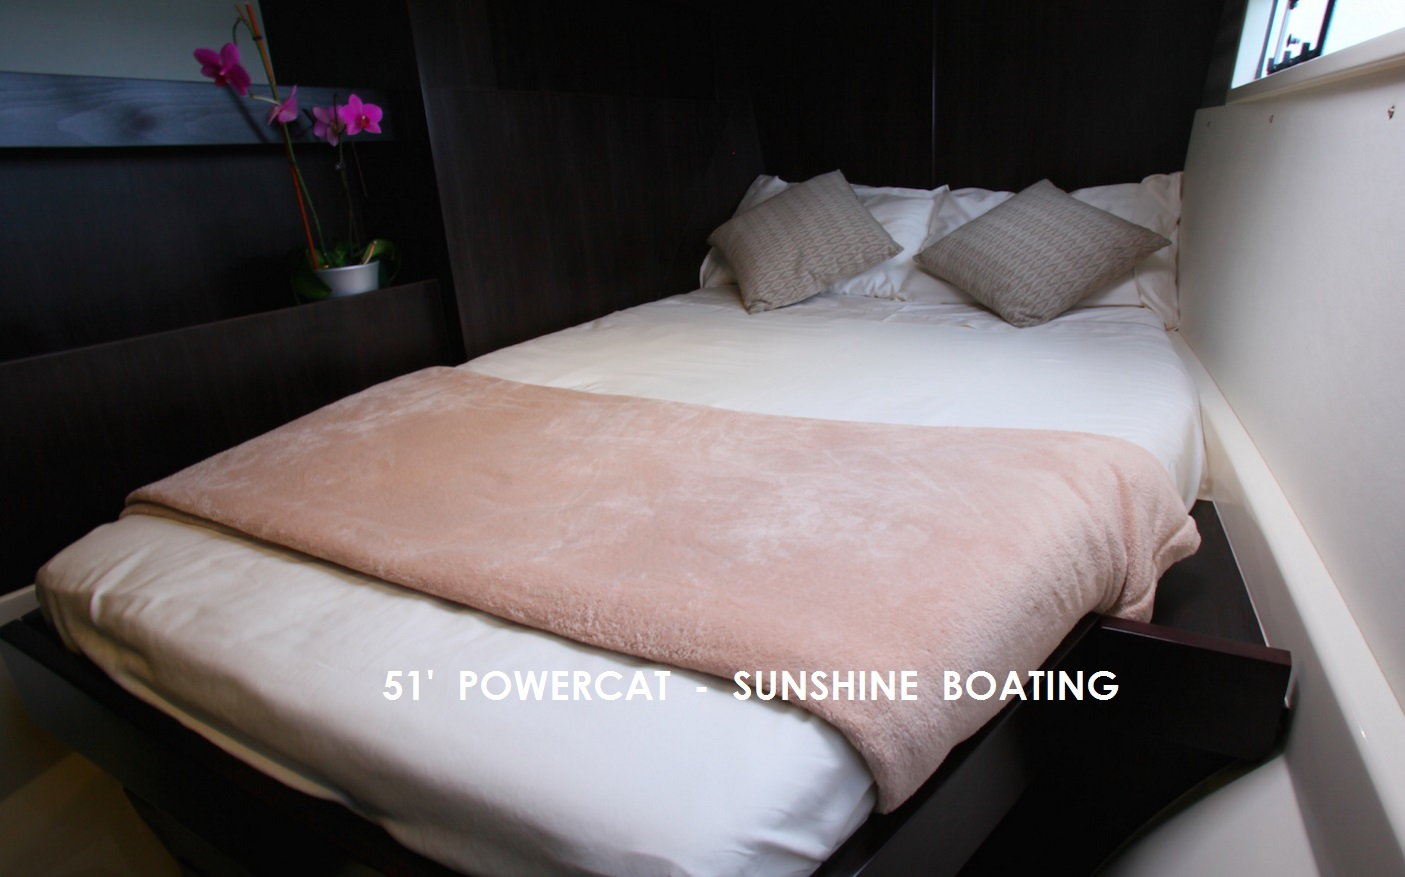 sunshine-boating-powercat-51-n